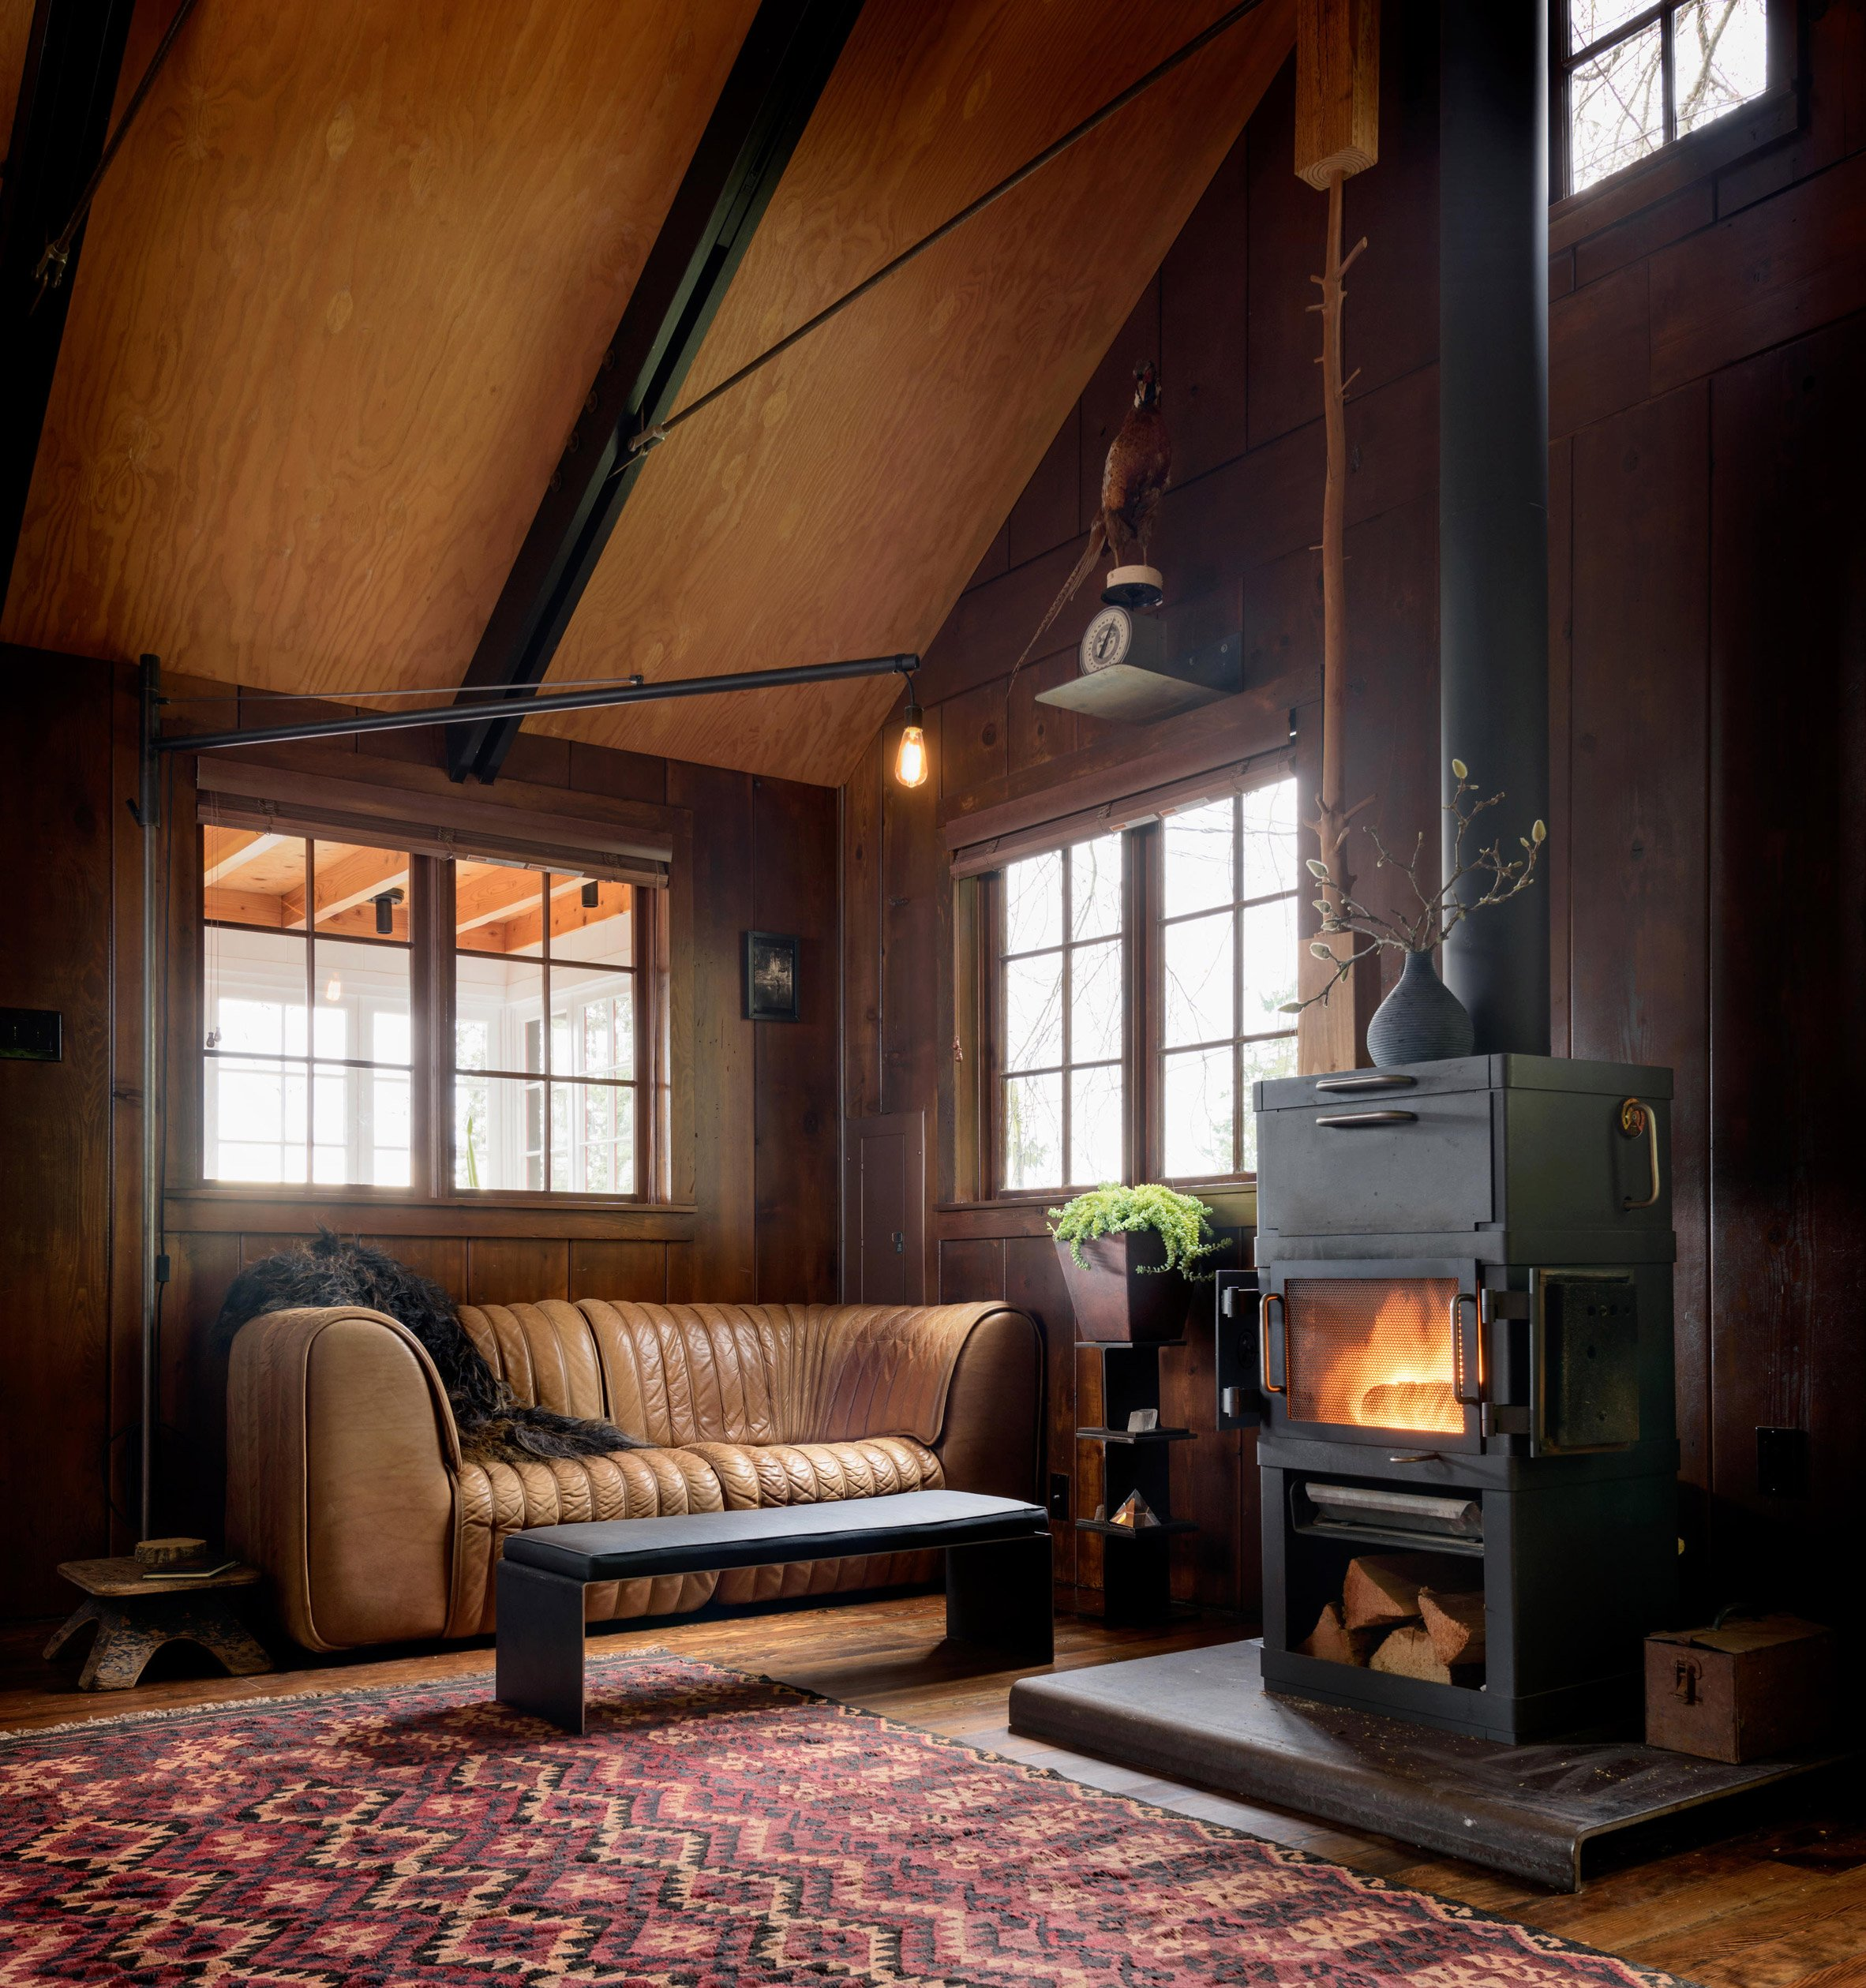 Fireplace of Agate Pass Cabin by Olson Kundig Architects